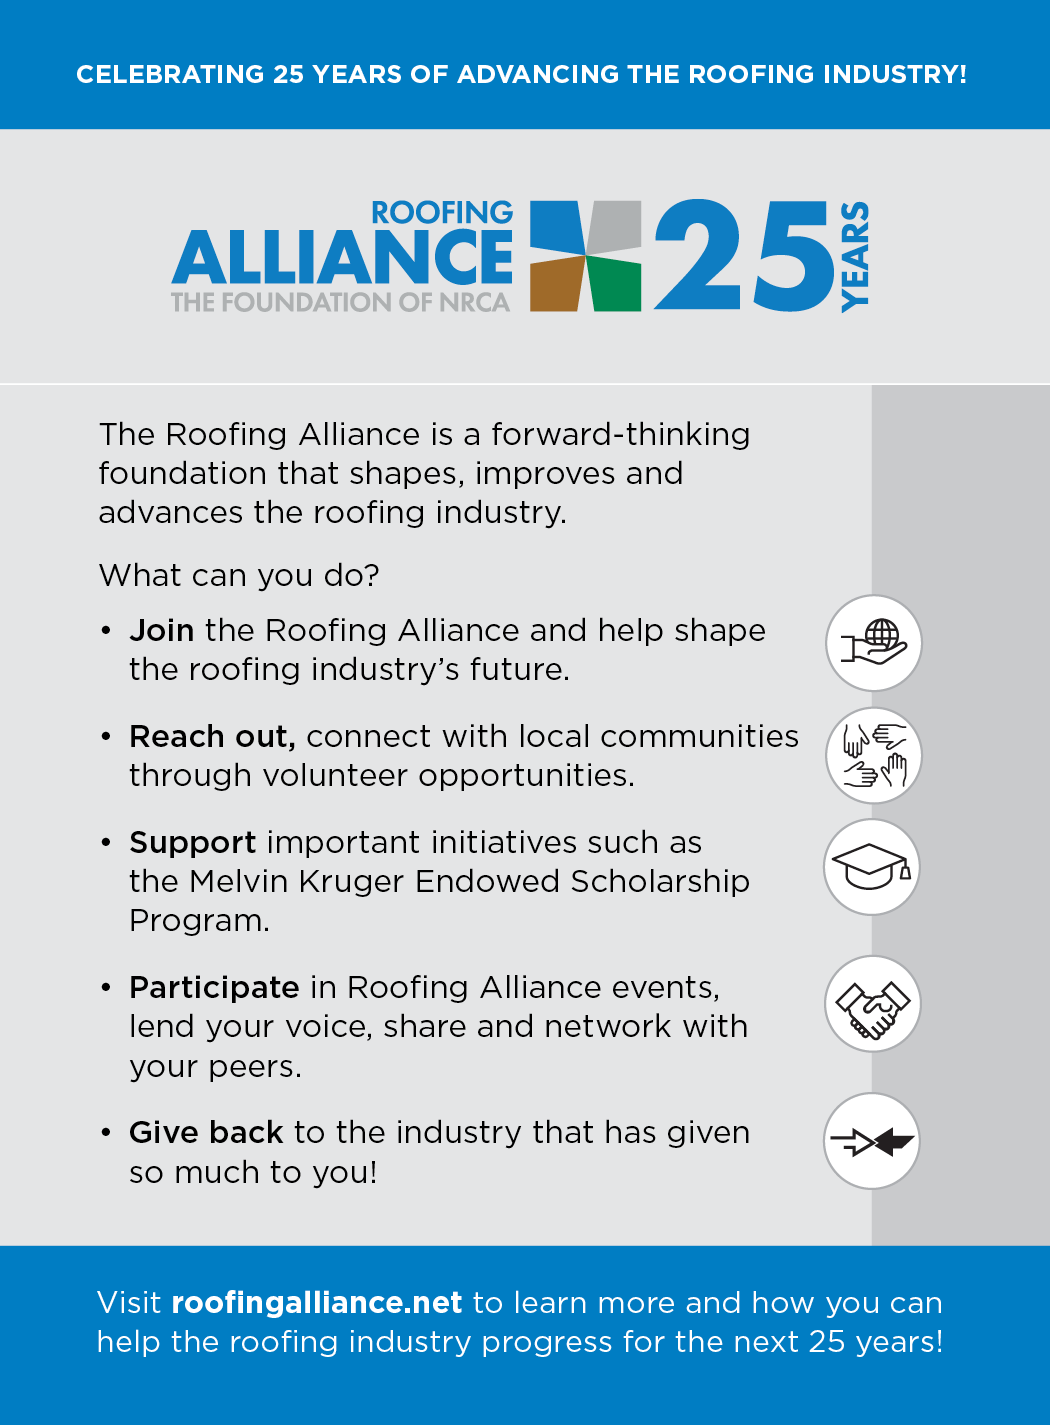 Roofing Alliance 25 Anniversary